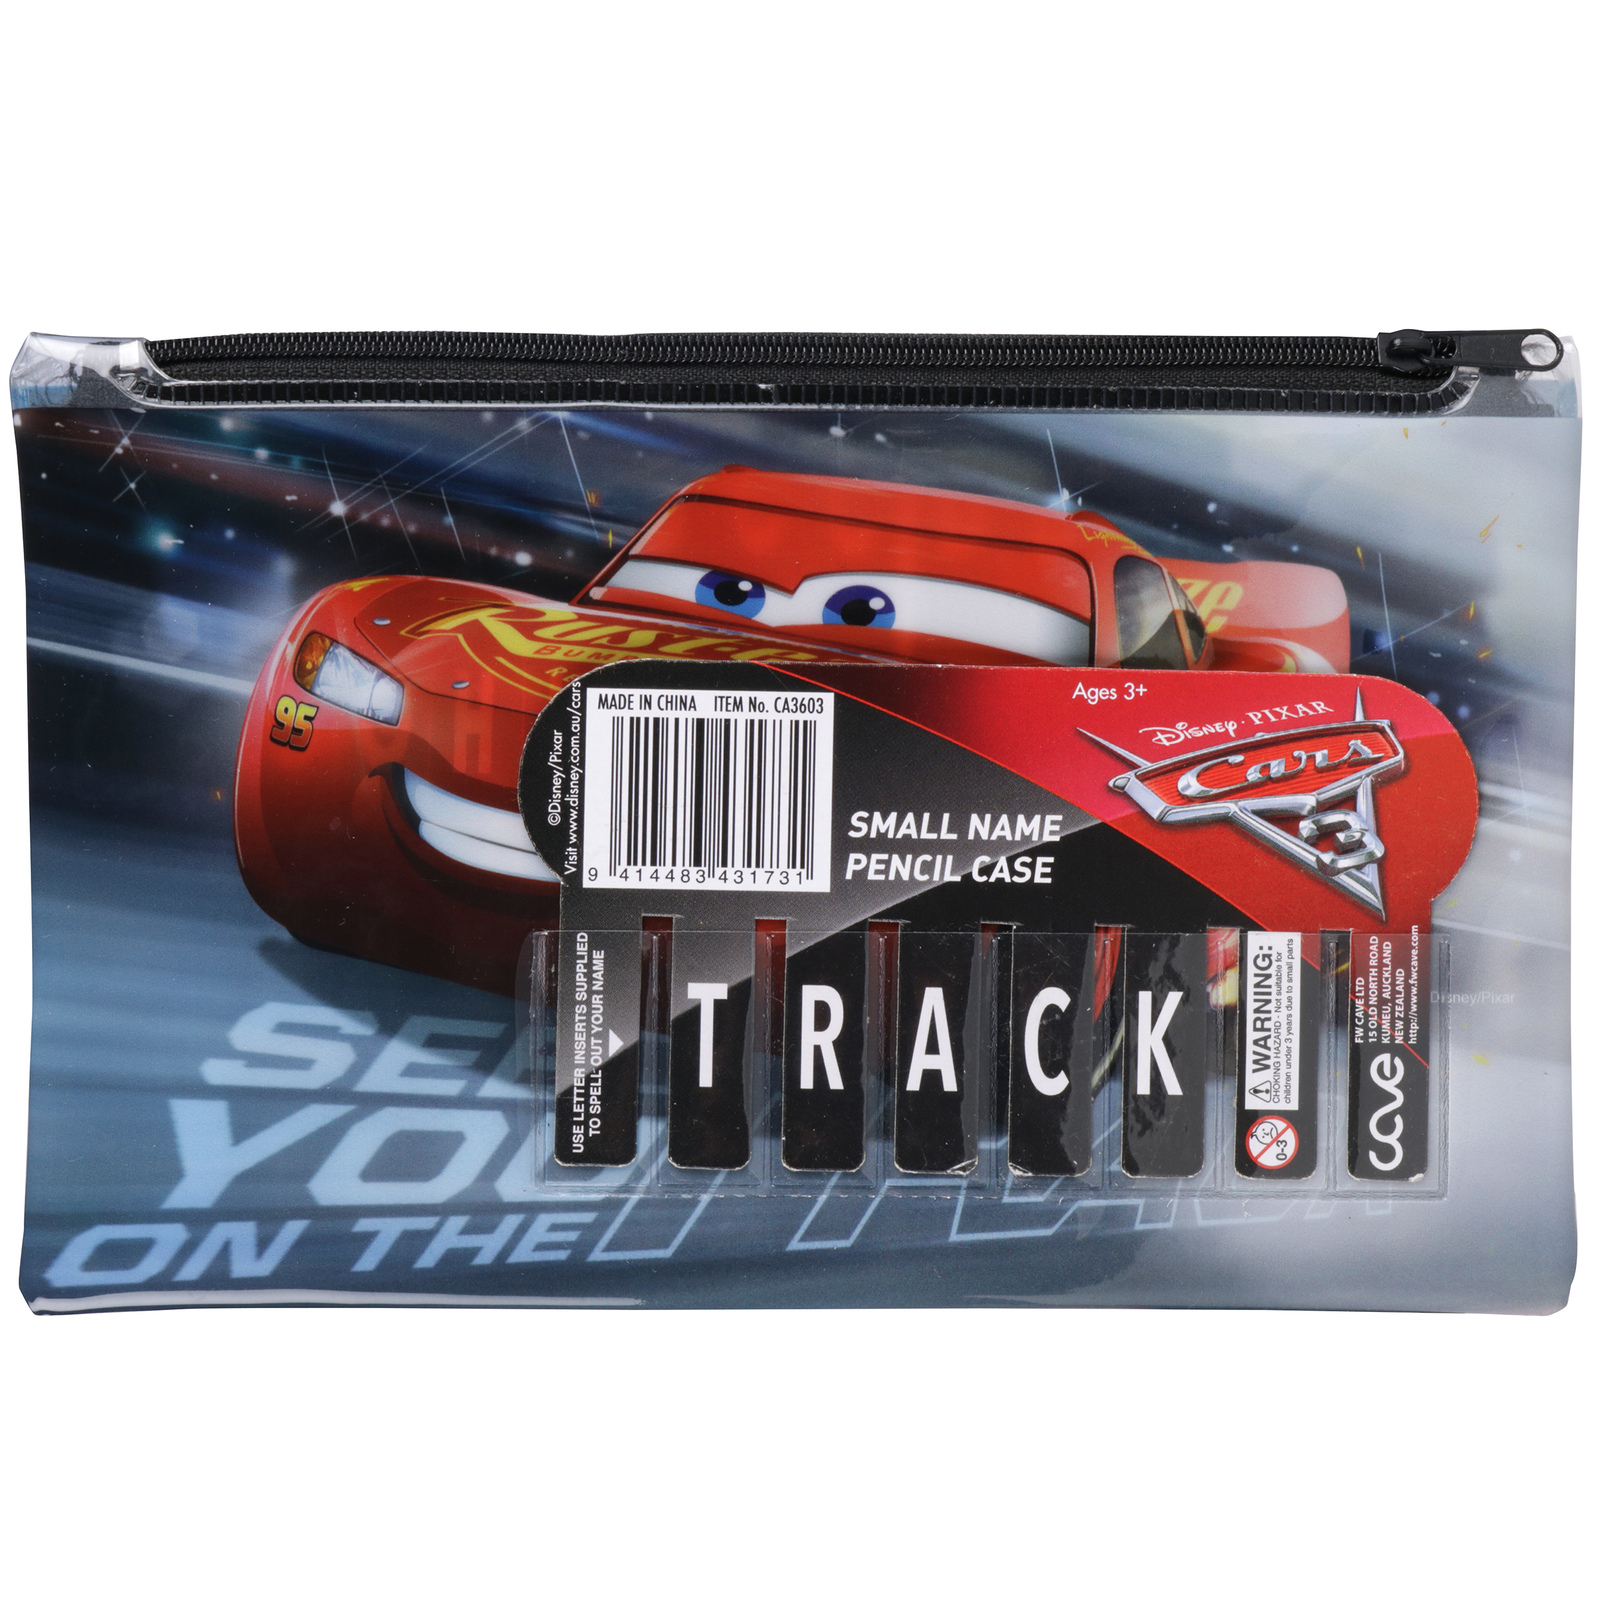 Disney Cars 3 Small Name Pencil Case image